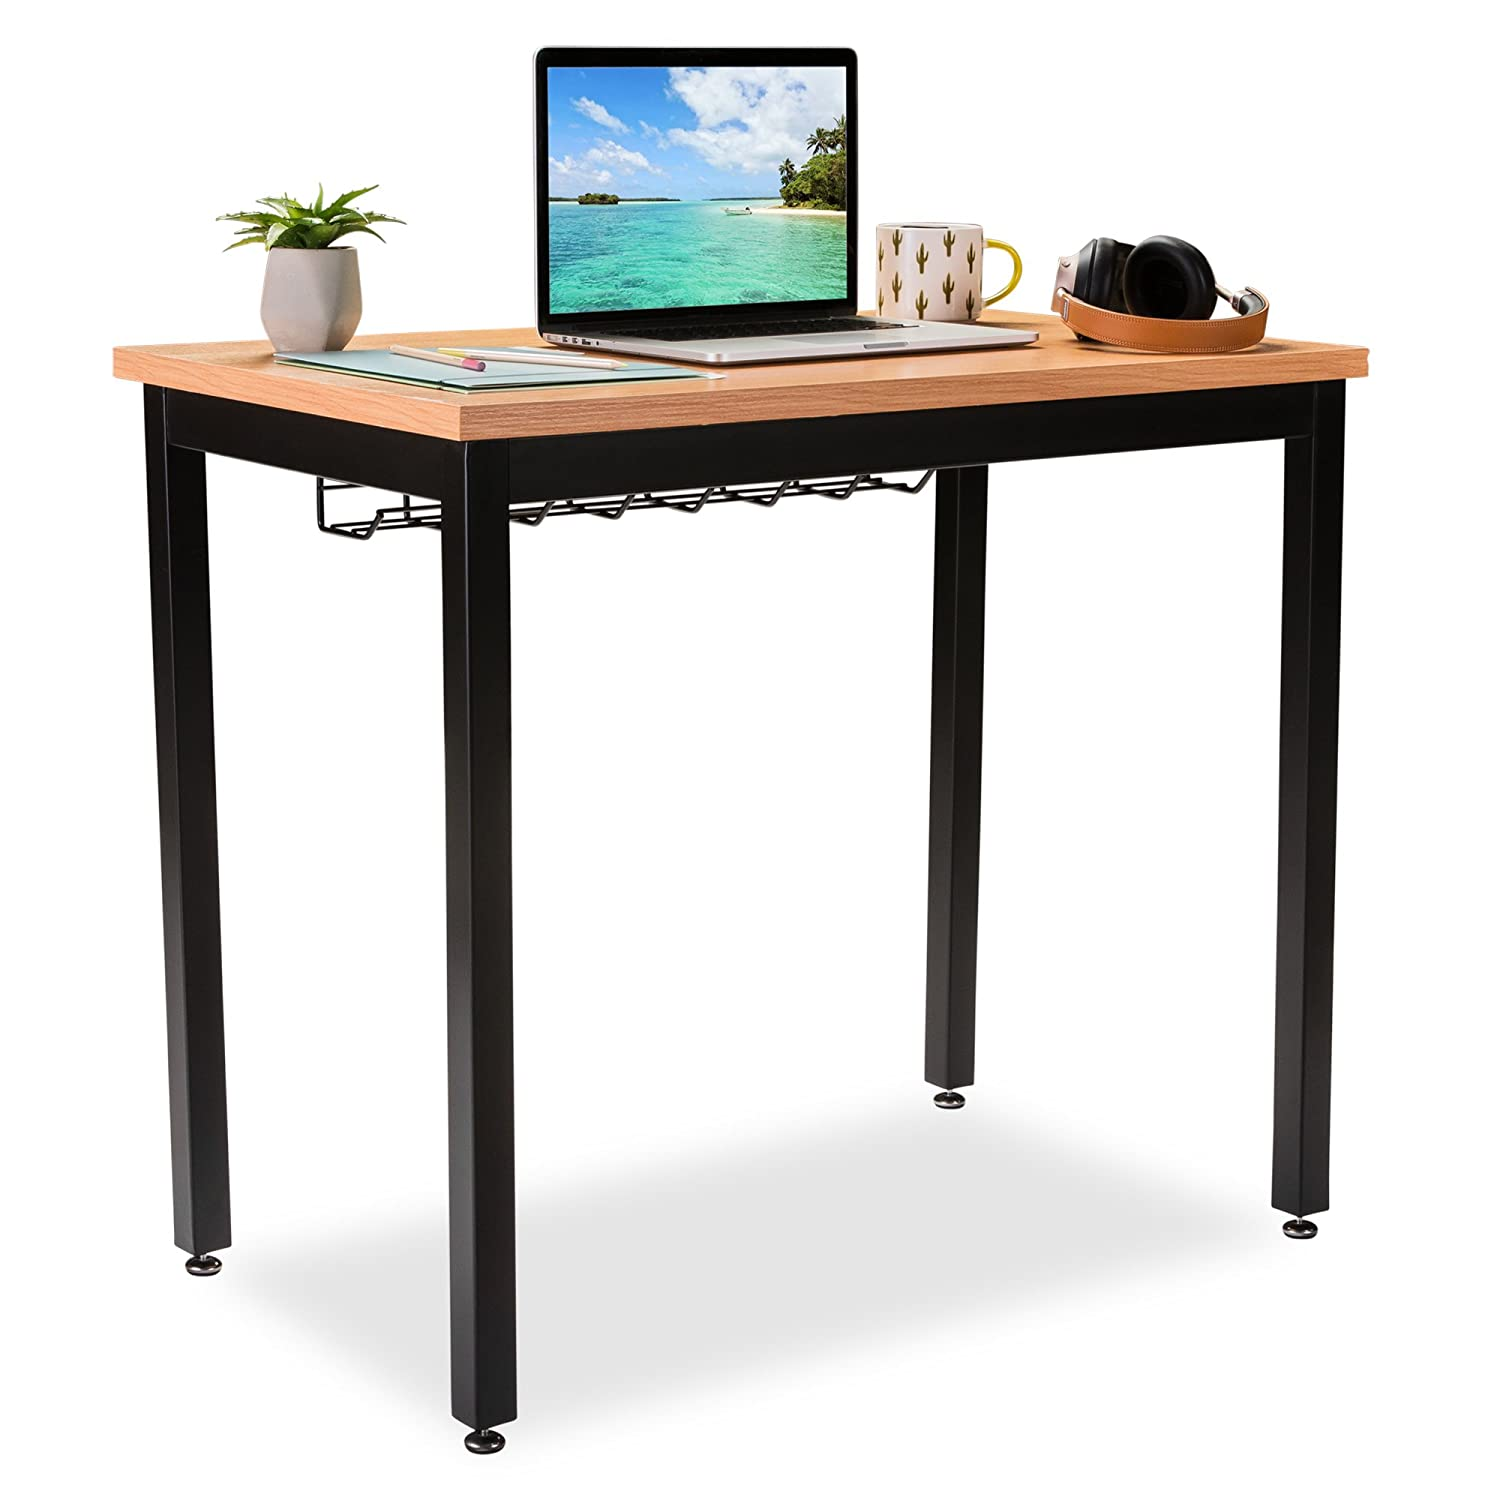 """brand new c56ae 647e6 Small Computer Desk for Home Office - 36"""" Length Table w/Cable Organizer -  Sturdy and Heavy Duty Writing Desk for Small Spaces and Students Laptop Use  ..."""